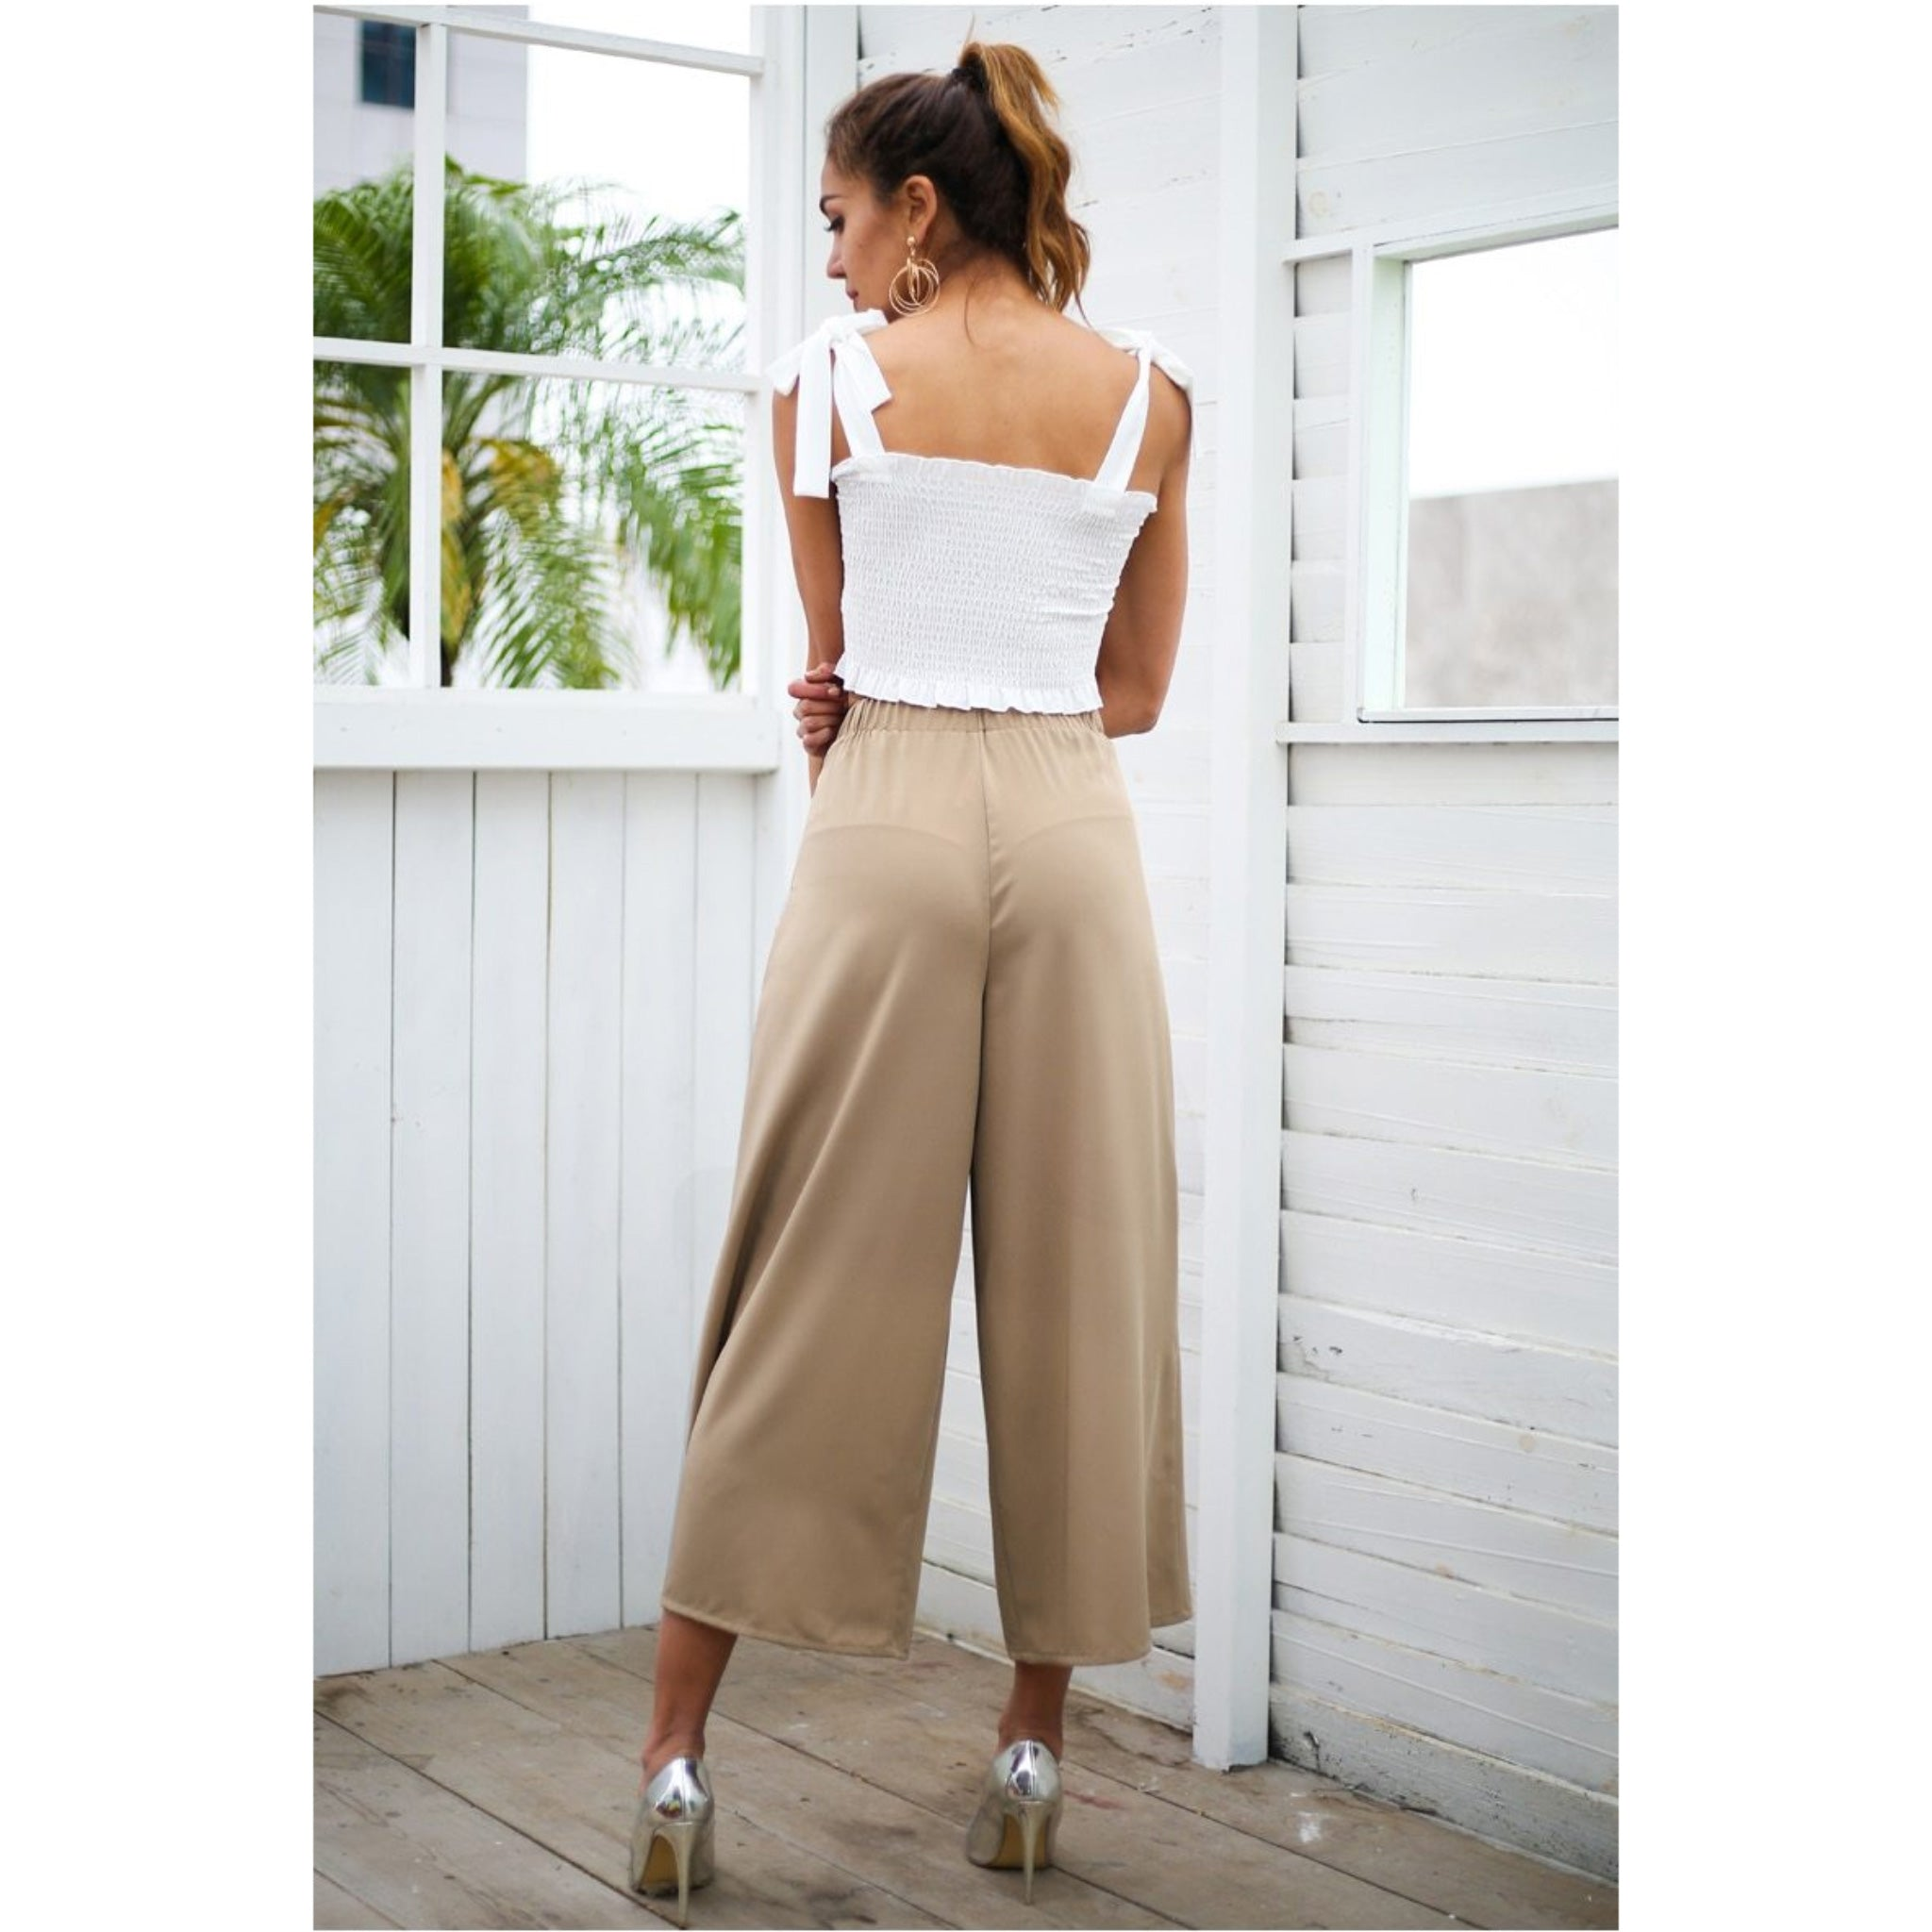 Capris Wide Leg Pants Khaki High Waist Capris Sash and Eyelets